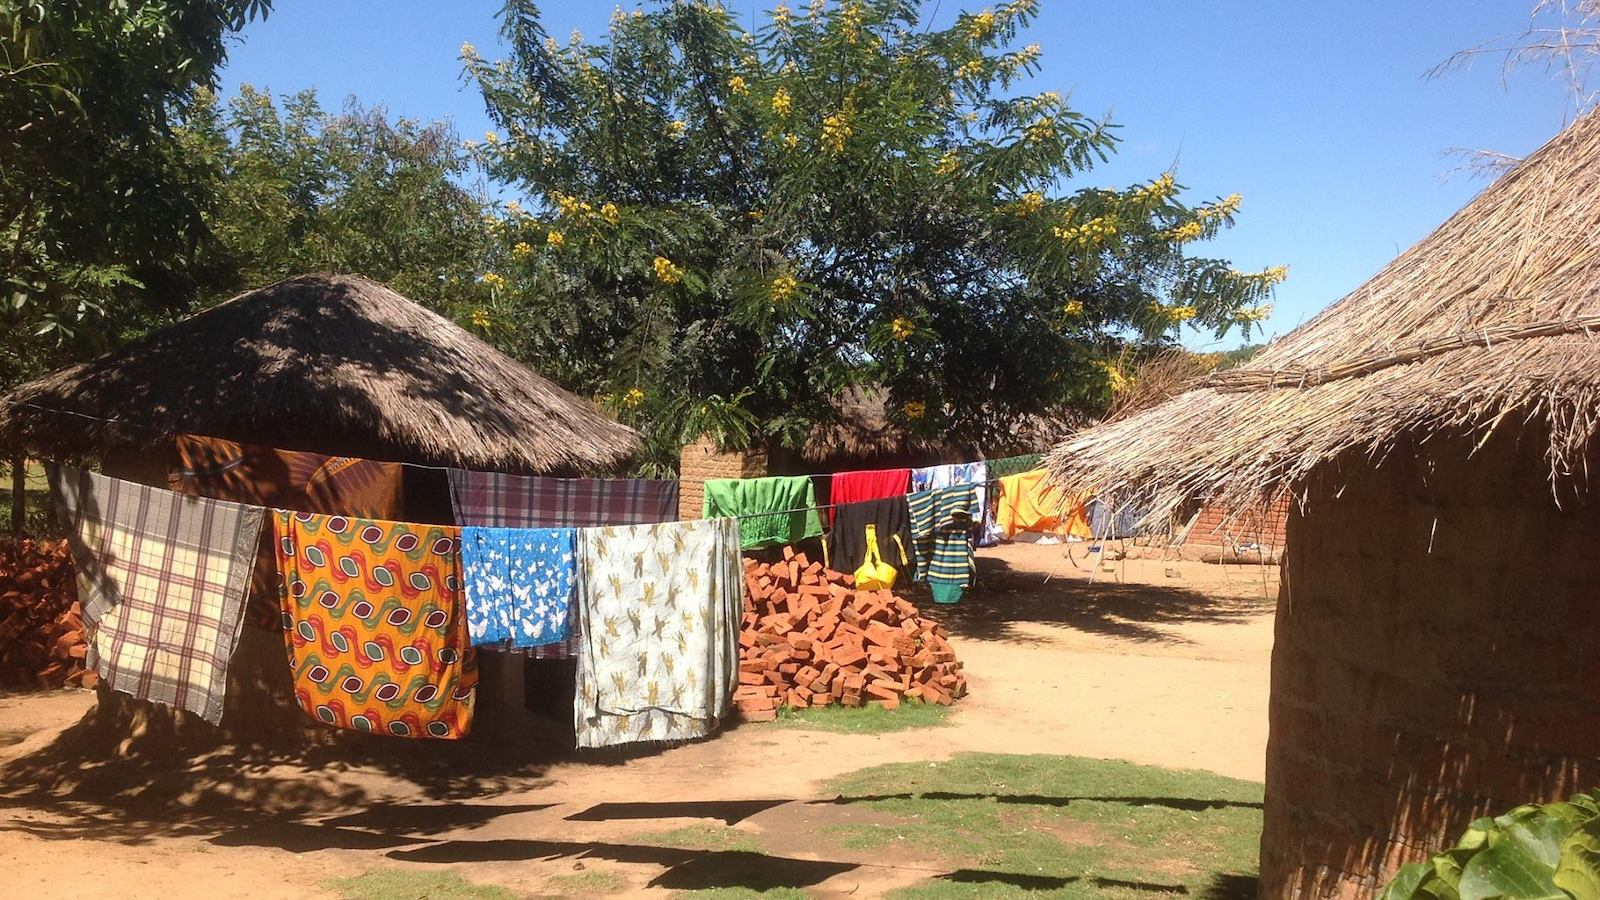 Inside view of a village in Mozambique